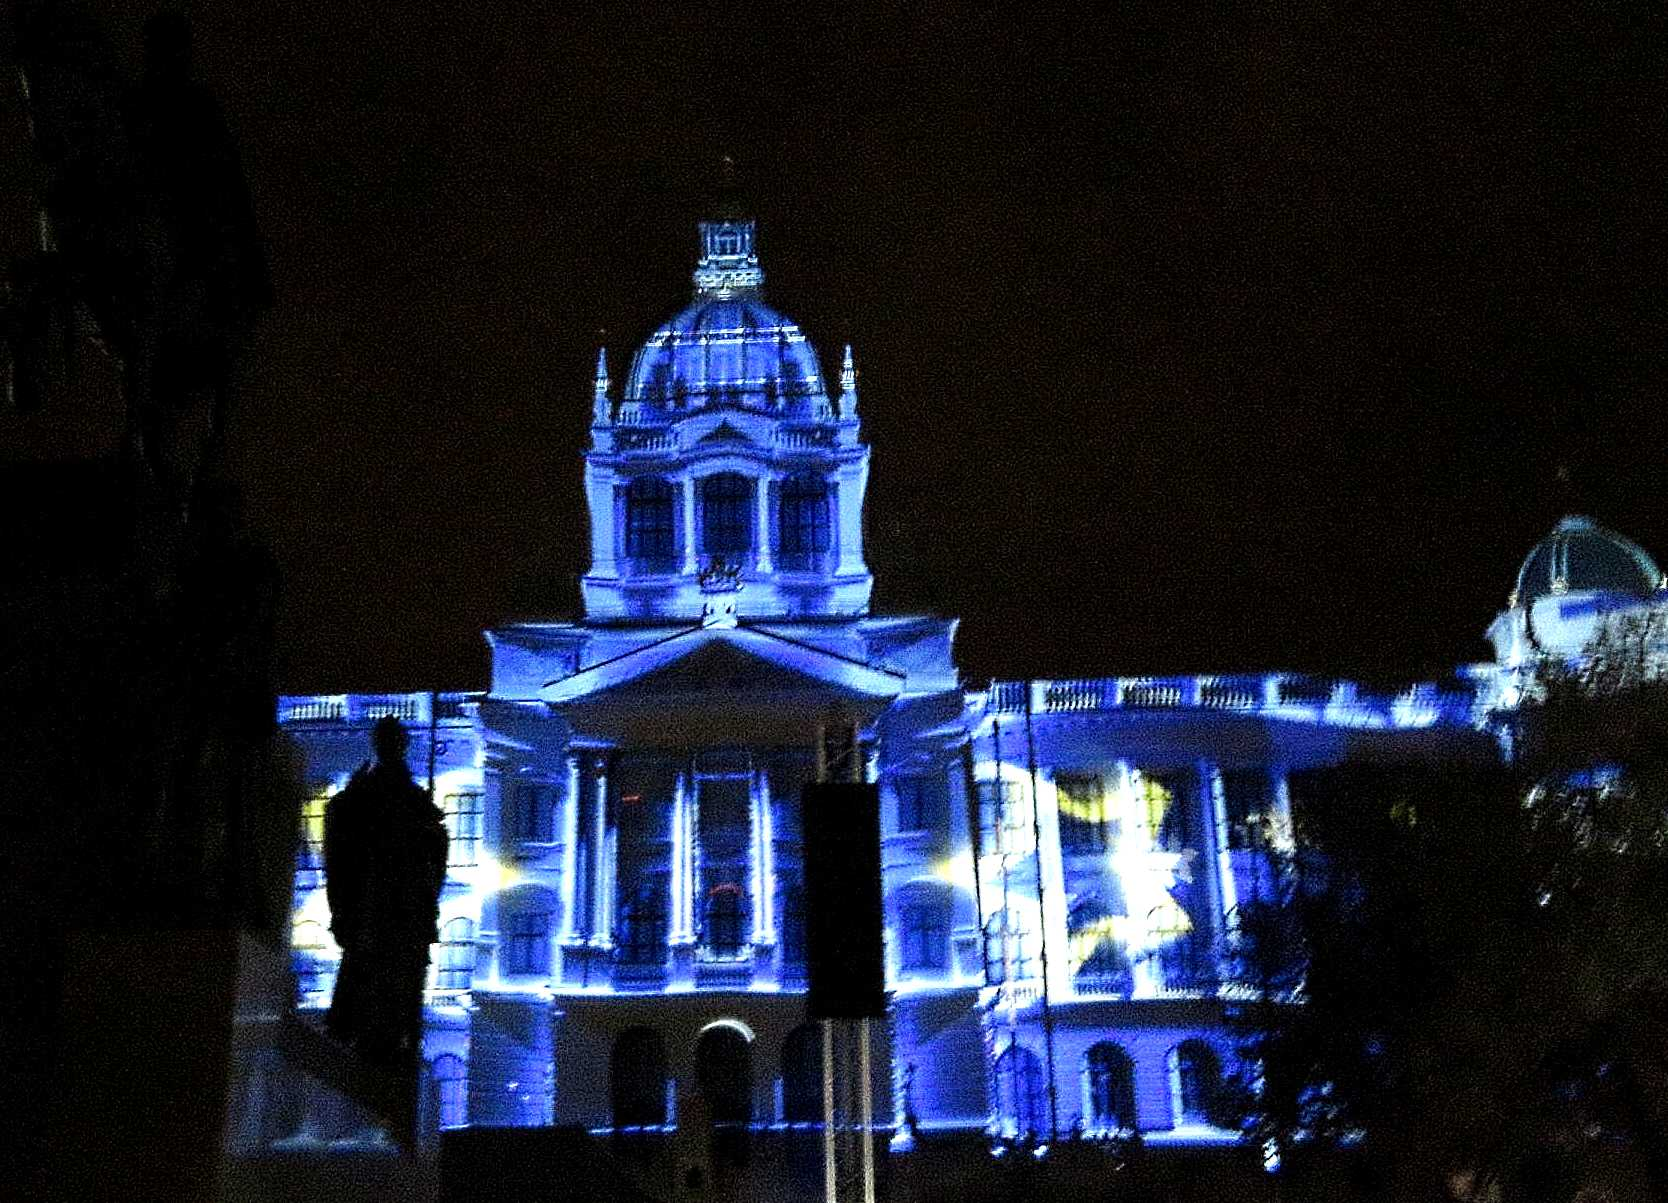 Instead of fireworks, Prague will celebrate New Year's Day with videomapping at the National Museum